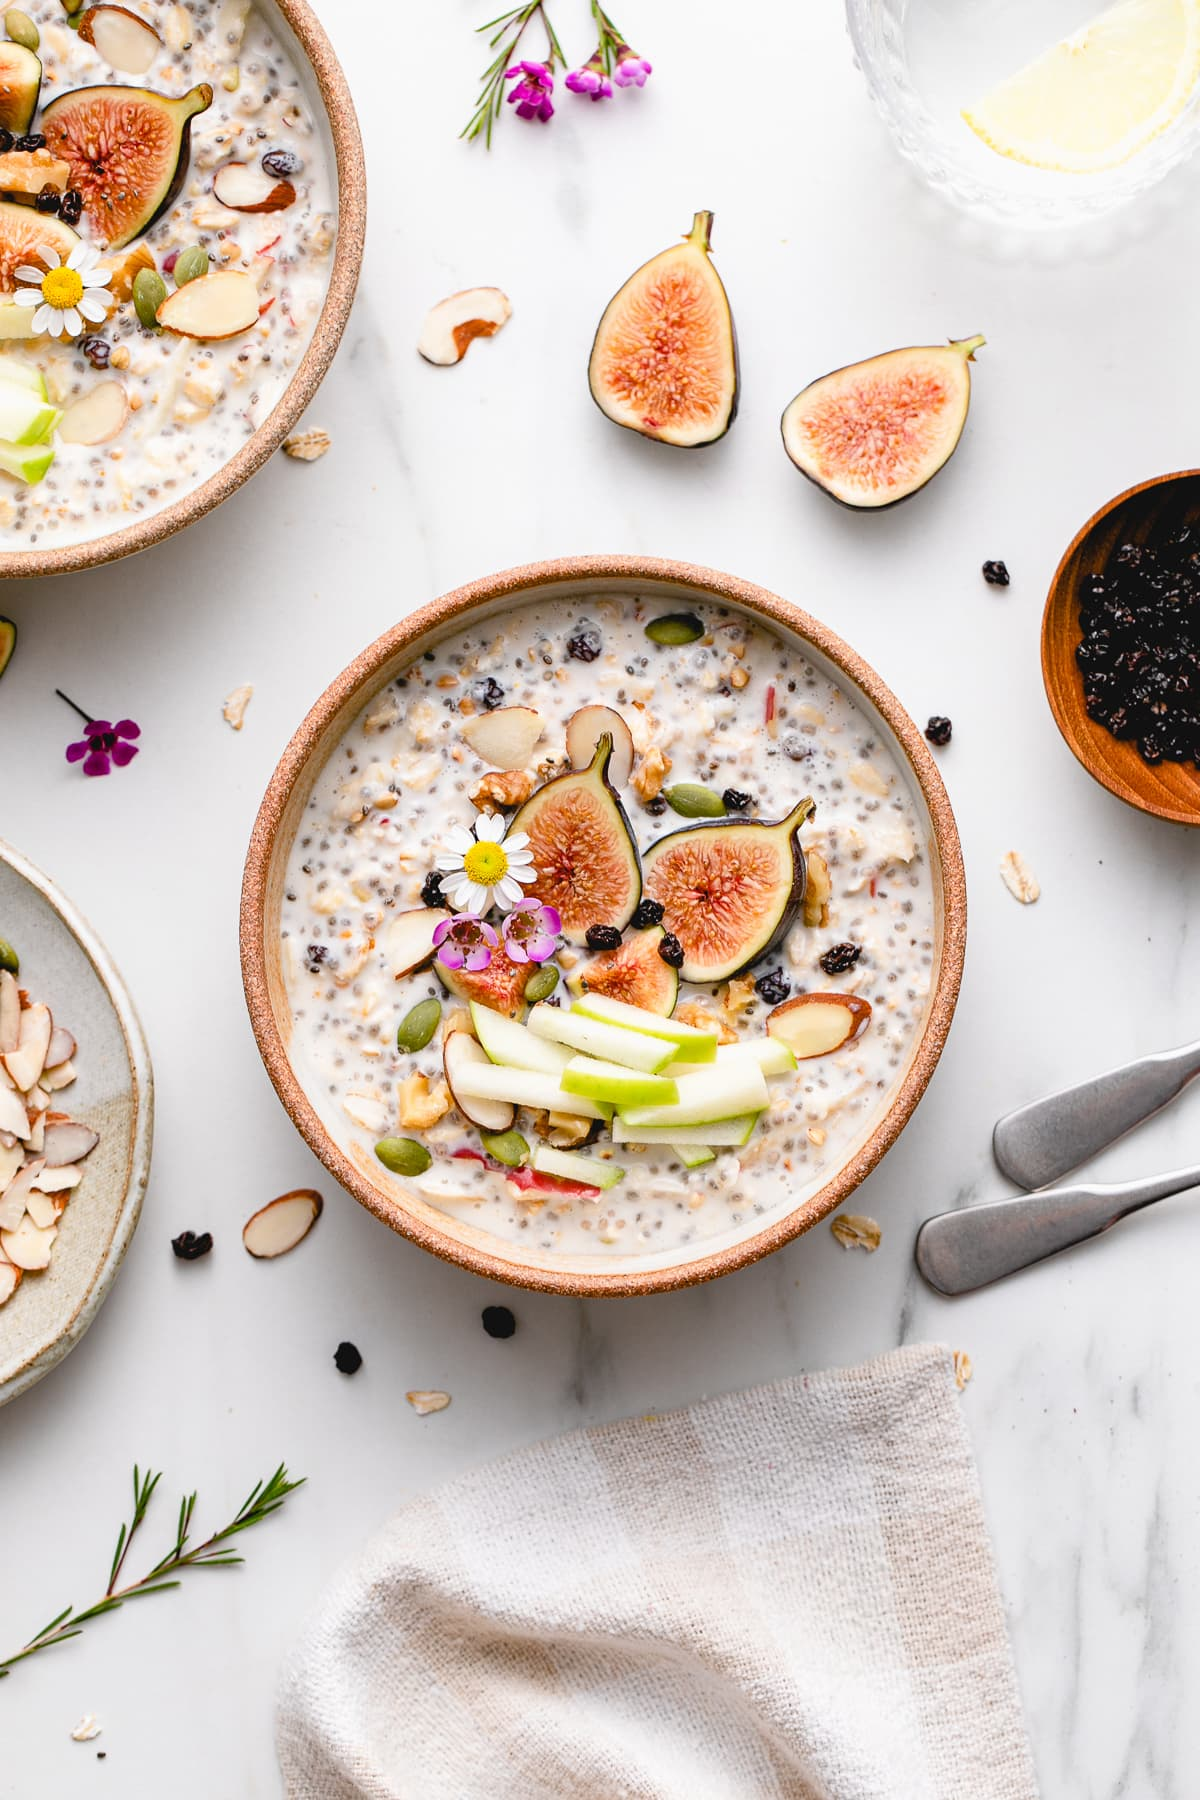 top down view of bowl of bircher muesli with fruits and nuts with items surrounding.